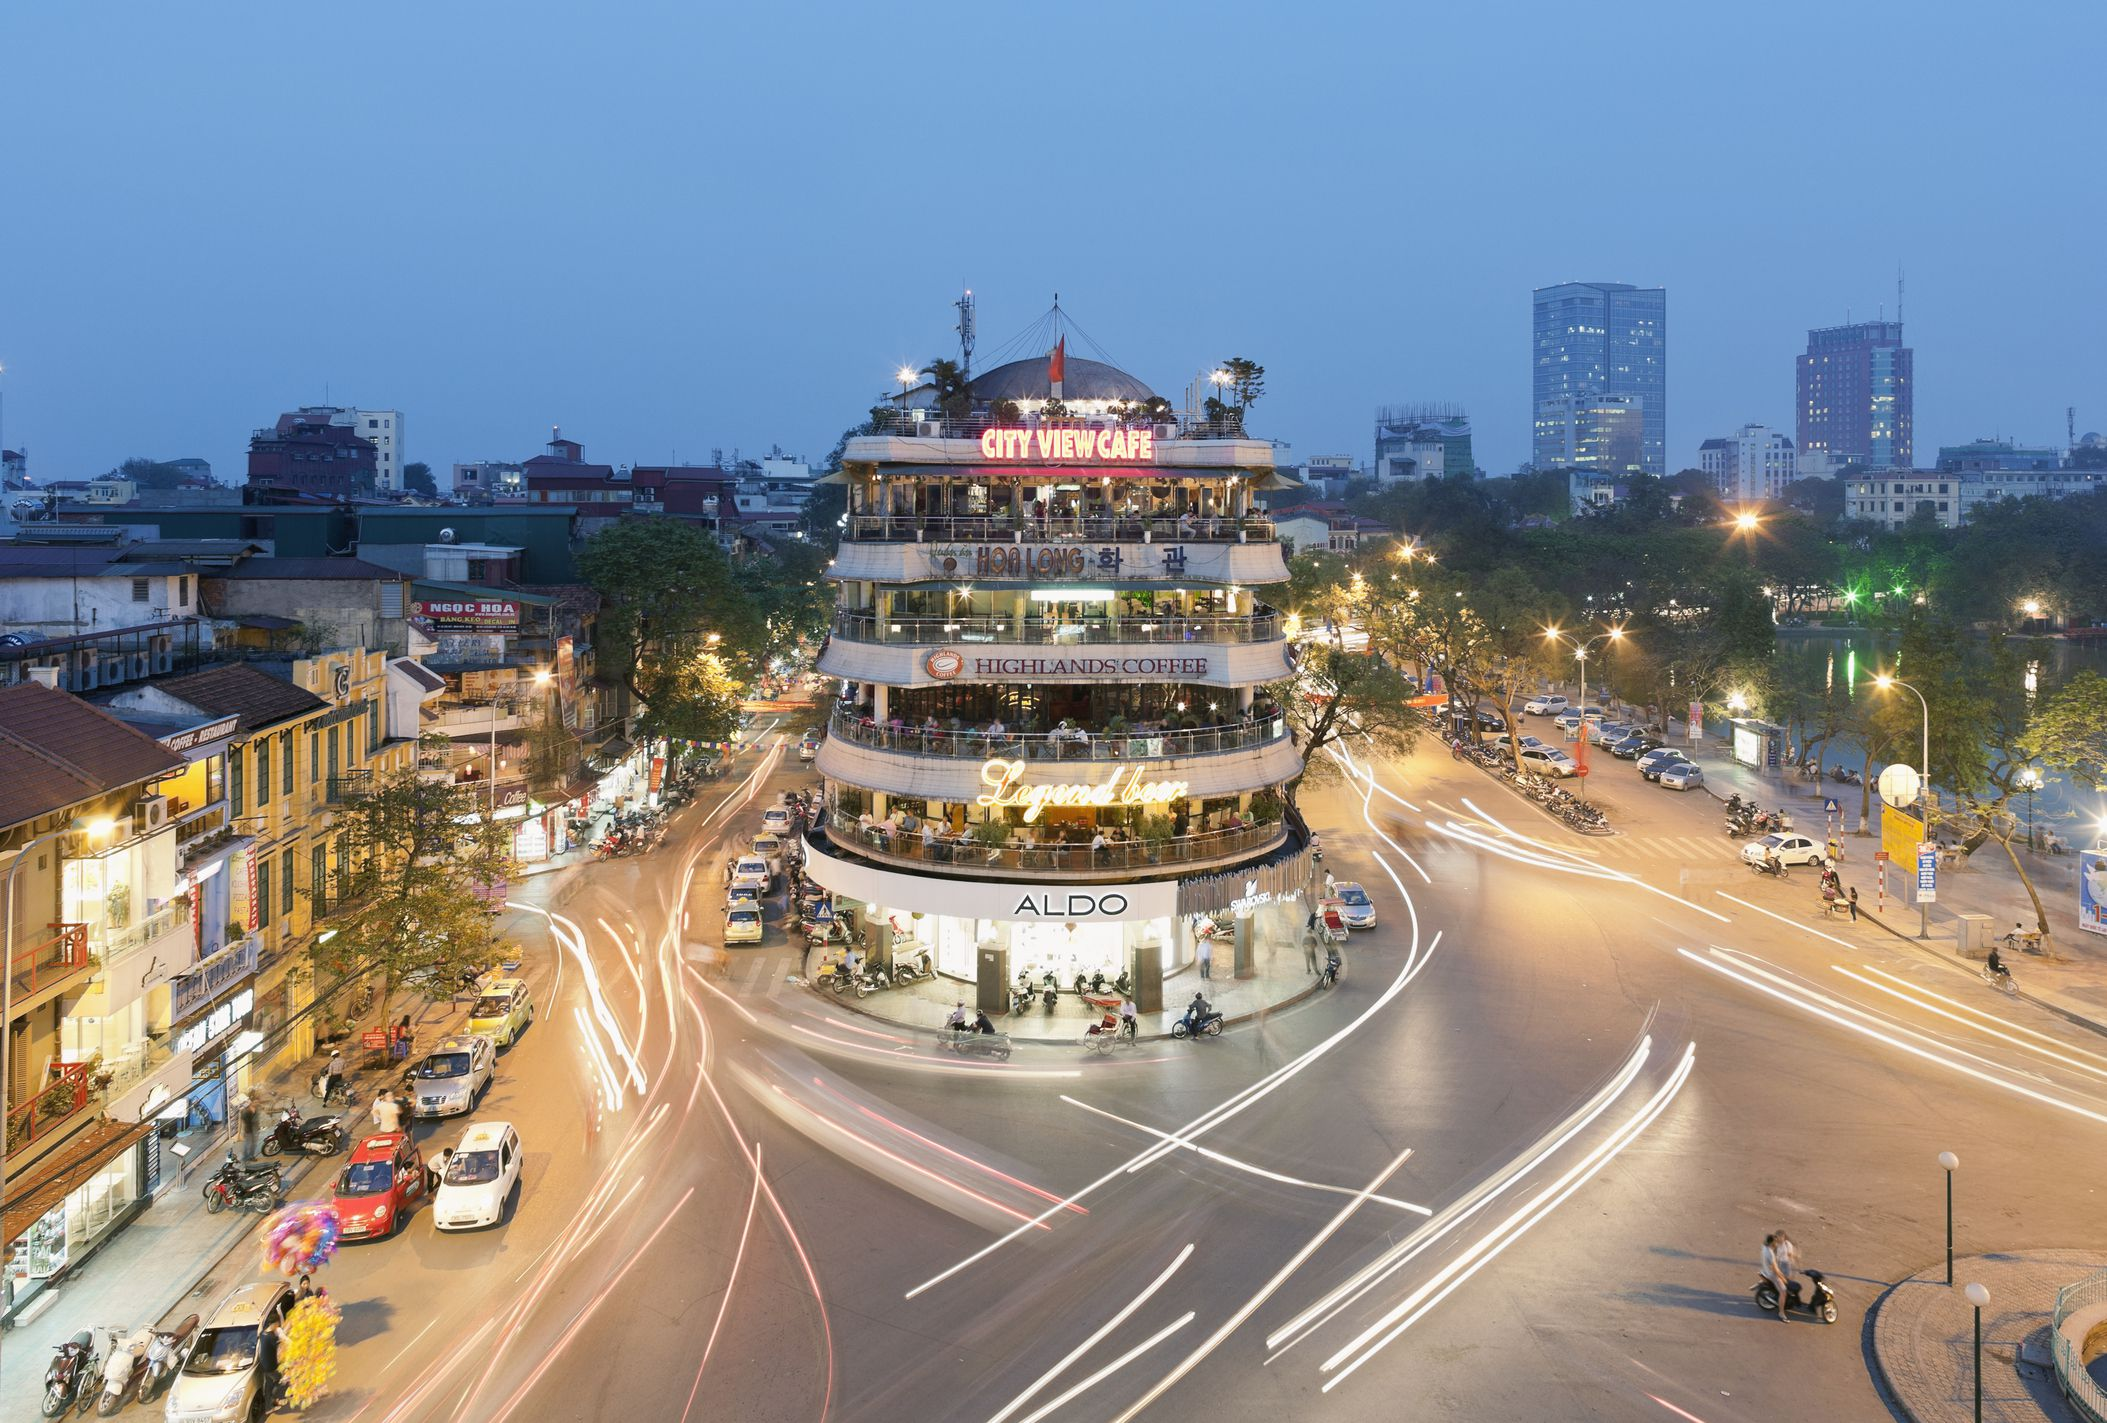 GettyImages 520483268 5a8001f5d8fdd50037283bae - 10 Best things to do in Vietnam for first-time visitors (2020)